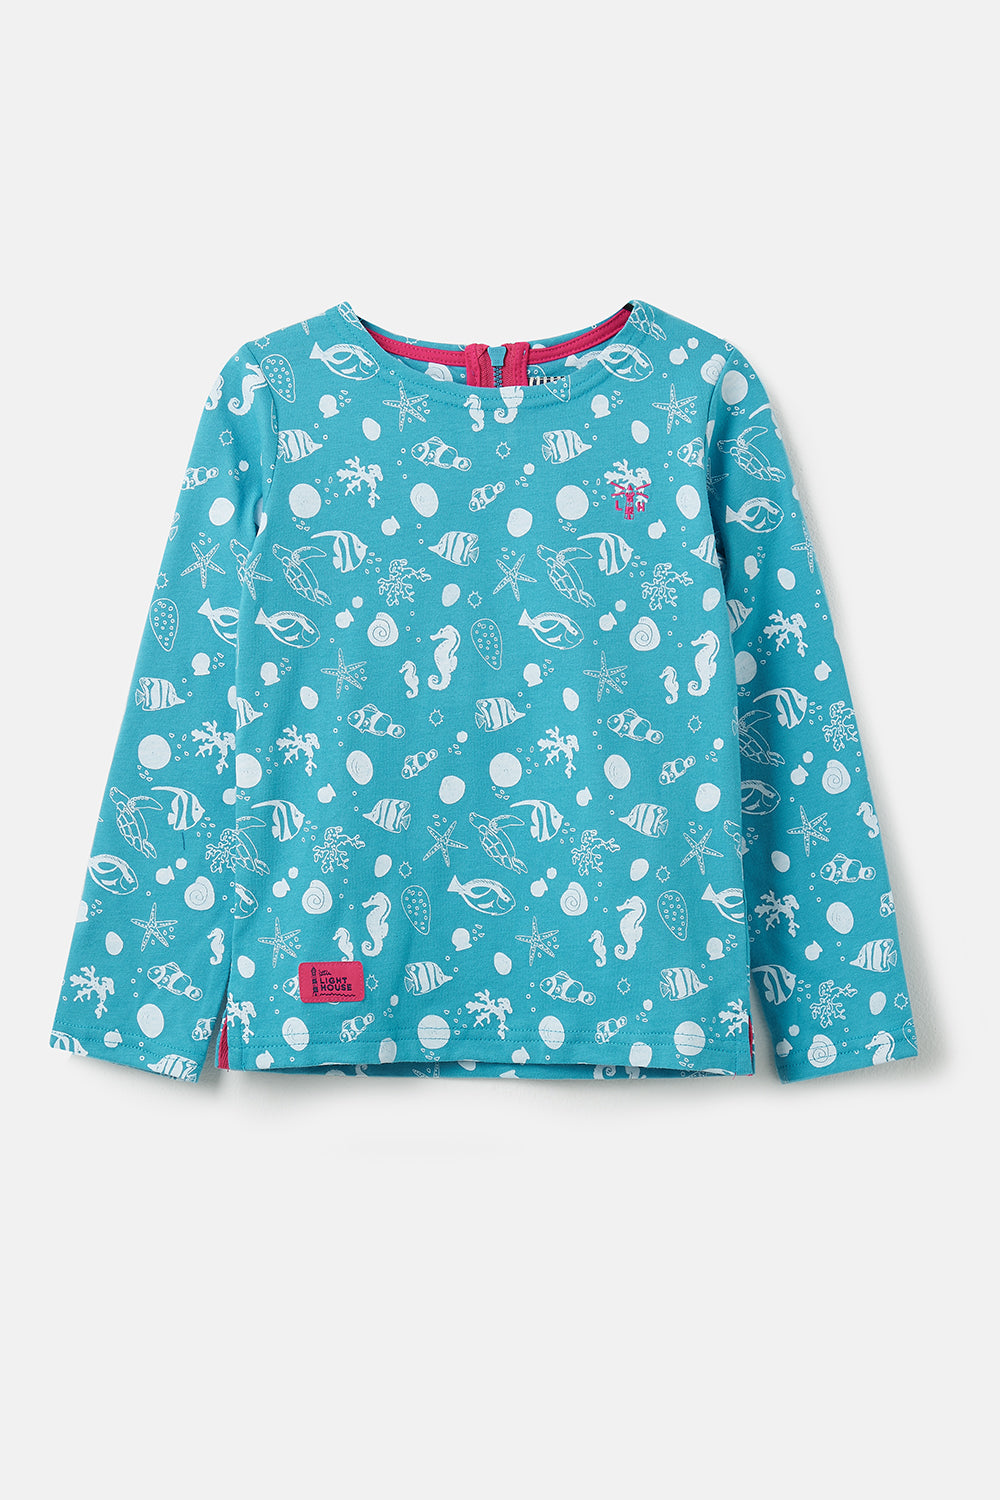 Girl's Tops - Causeway - Teal seashell print top